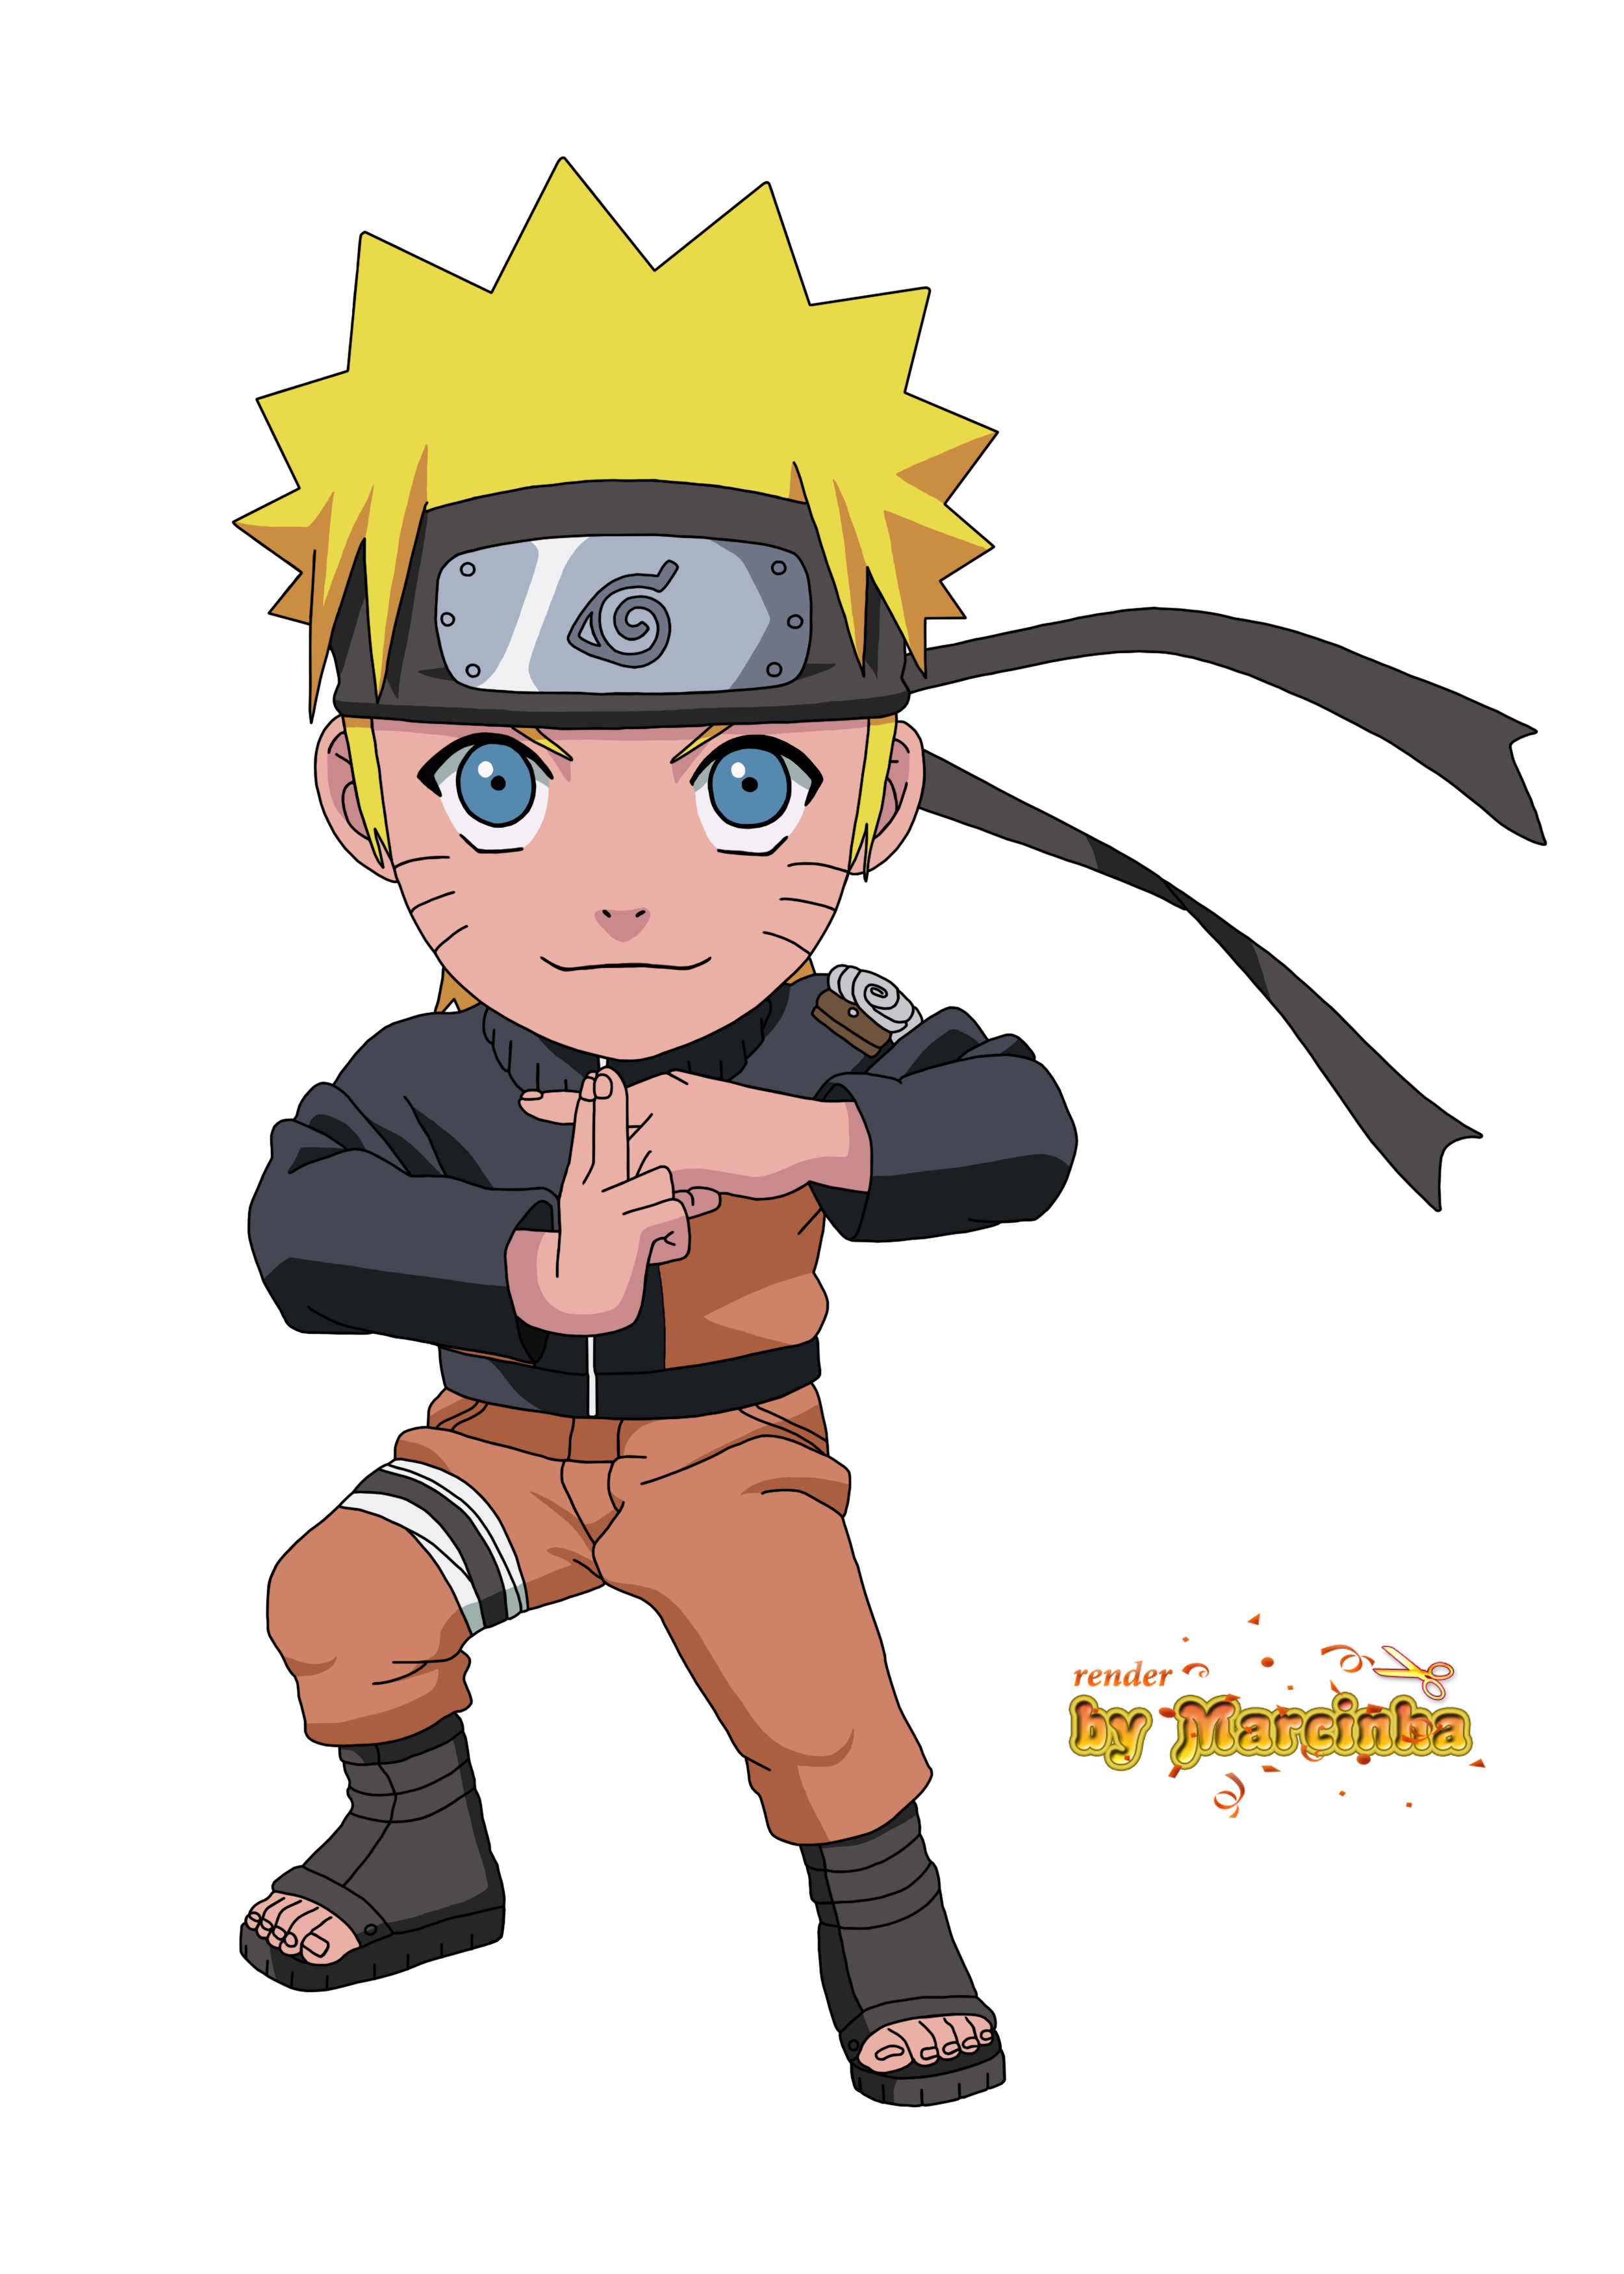 Anime Characters Chibi Naruto | www.imgkid.com - The Image ...